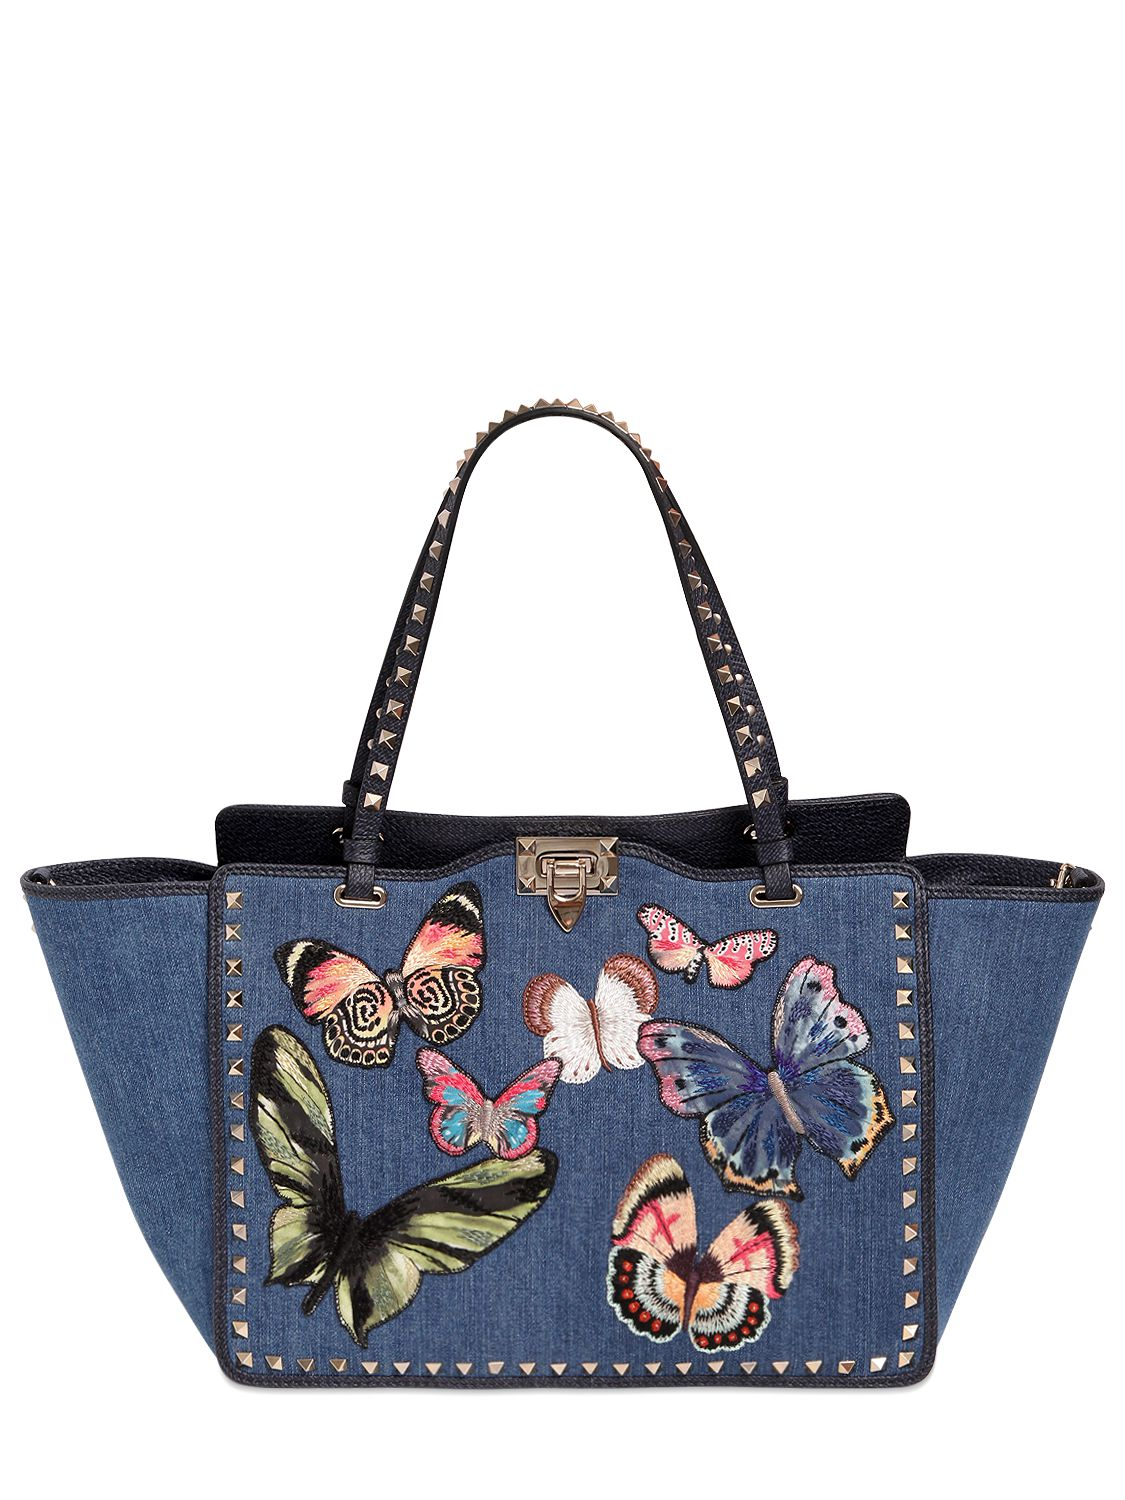 Valentino rockstud butterfly embroidered denim bag in